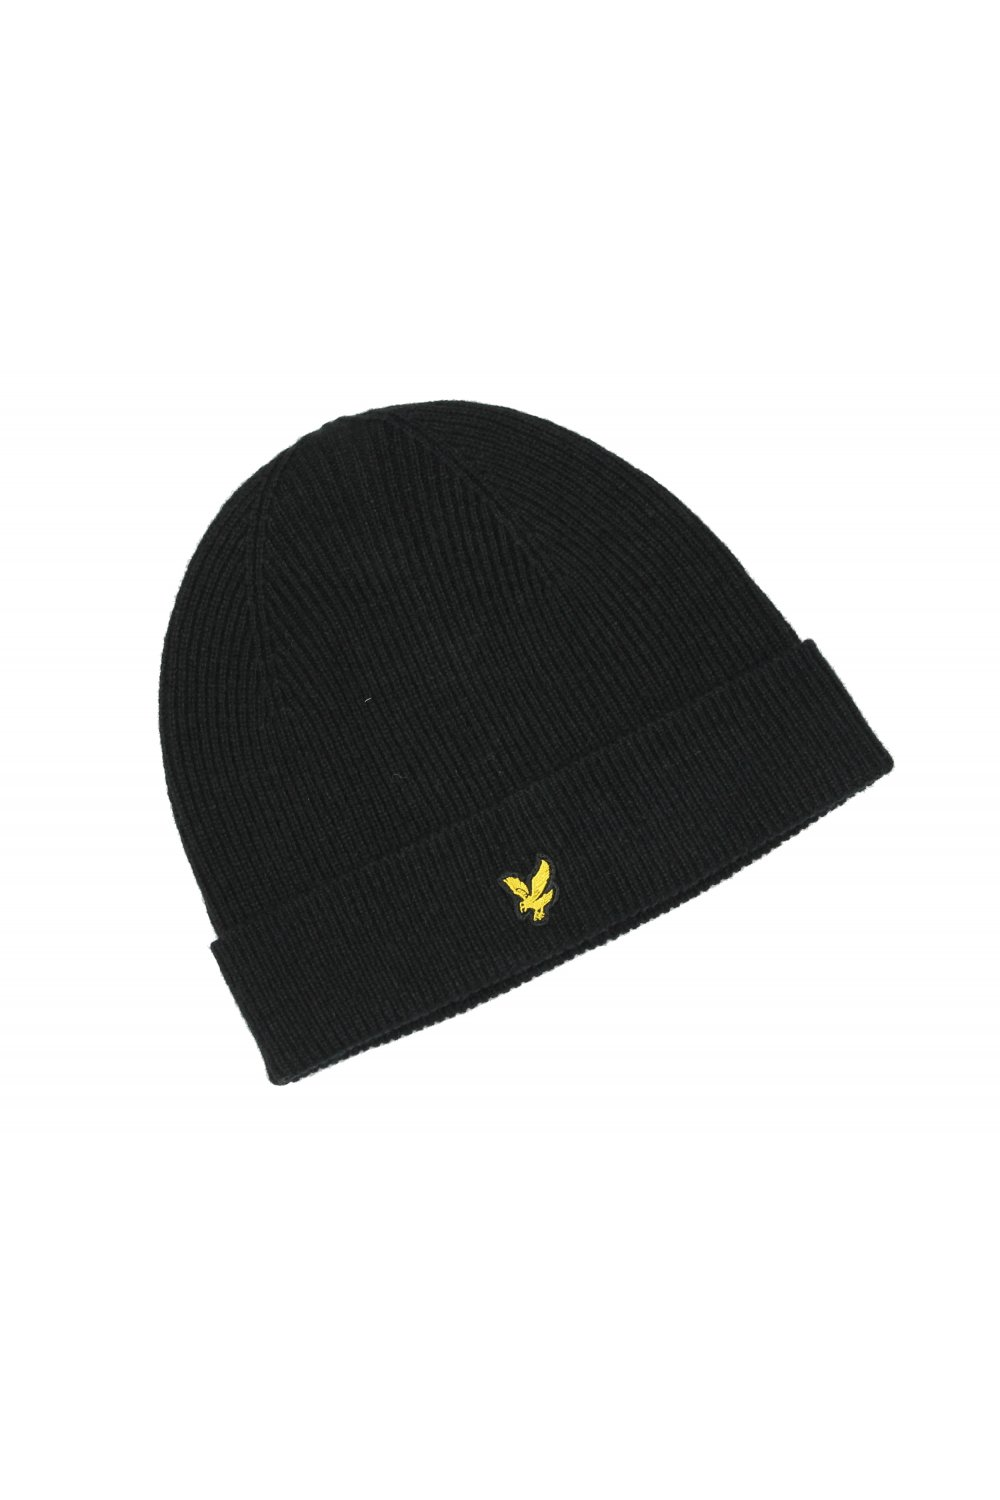 488b9194a Lyle & Scott Plain Beanie Hat (True Black)